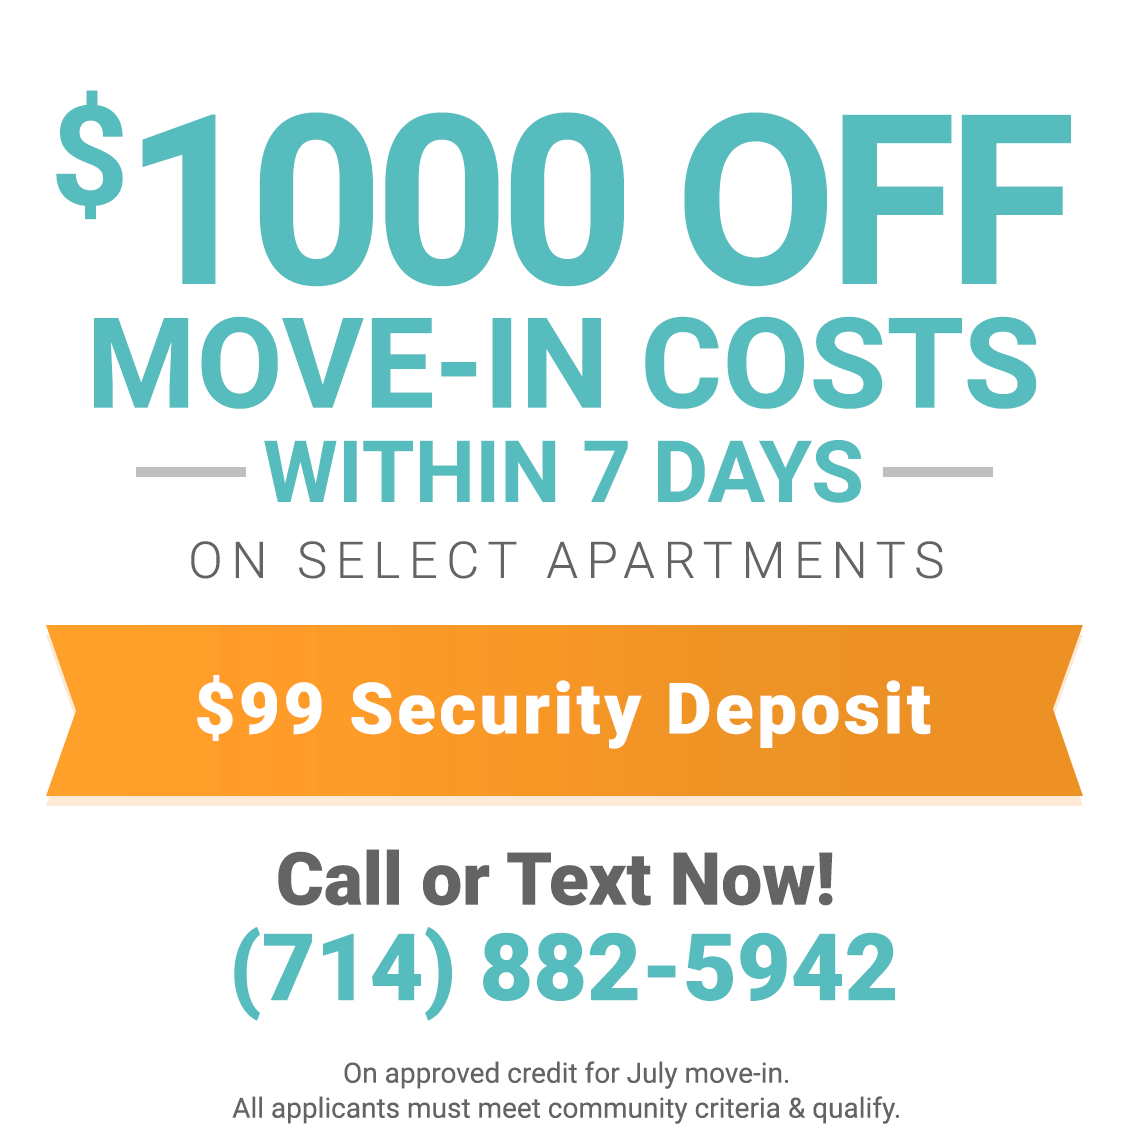 $1,000 Off move-in costs in July within 7 days on select units and on approved credit. Contact us for details.